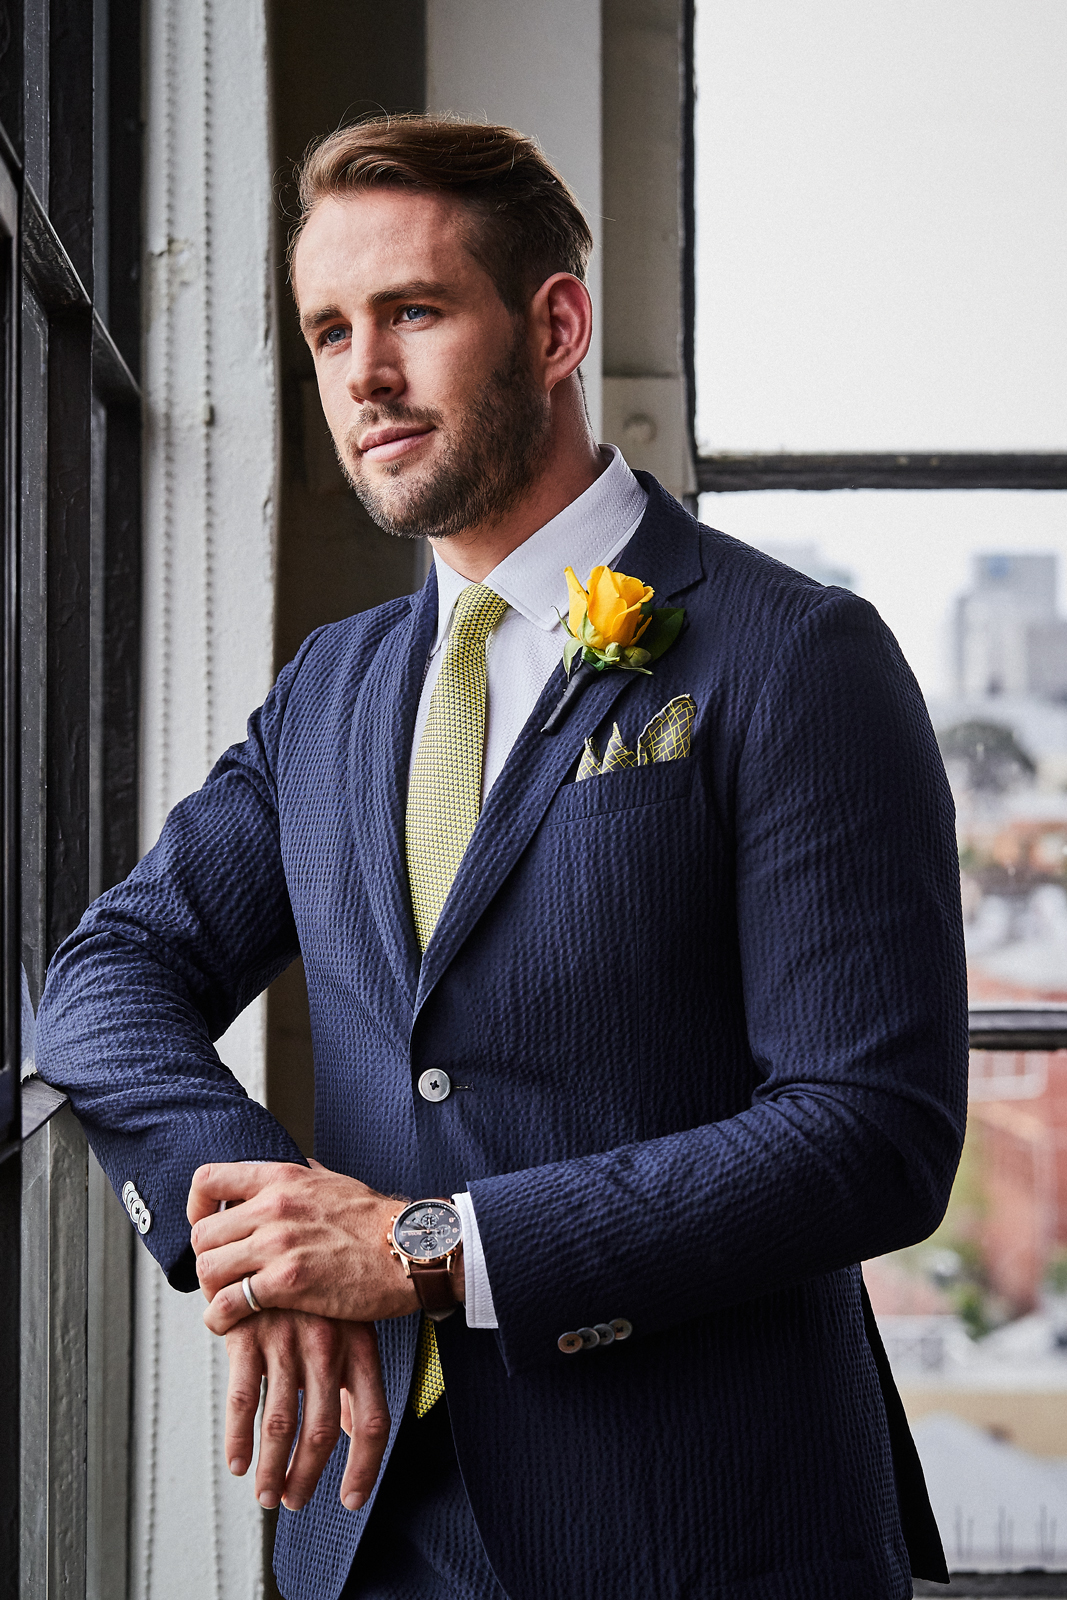 the-tailored-man-hugo-boss-spring-racing-neale-whitaker-melbourne-cup